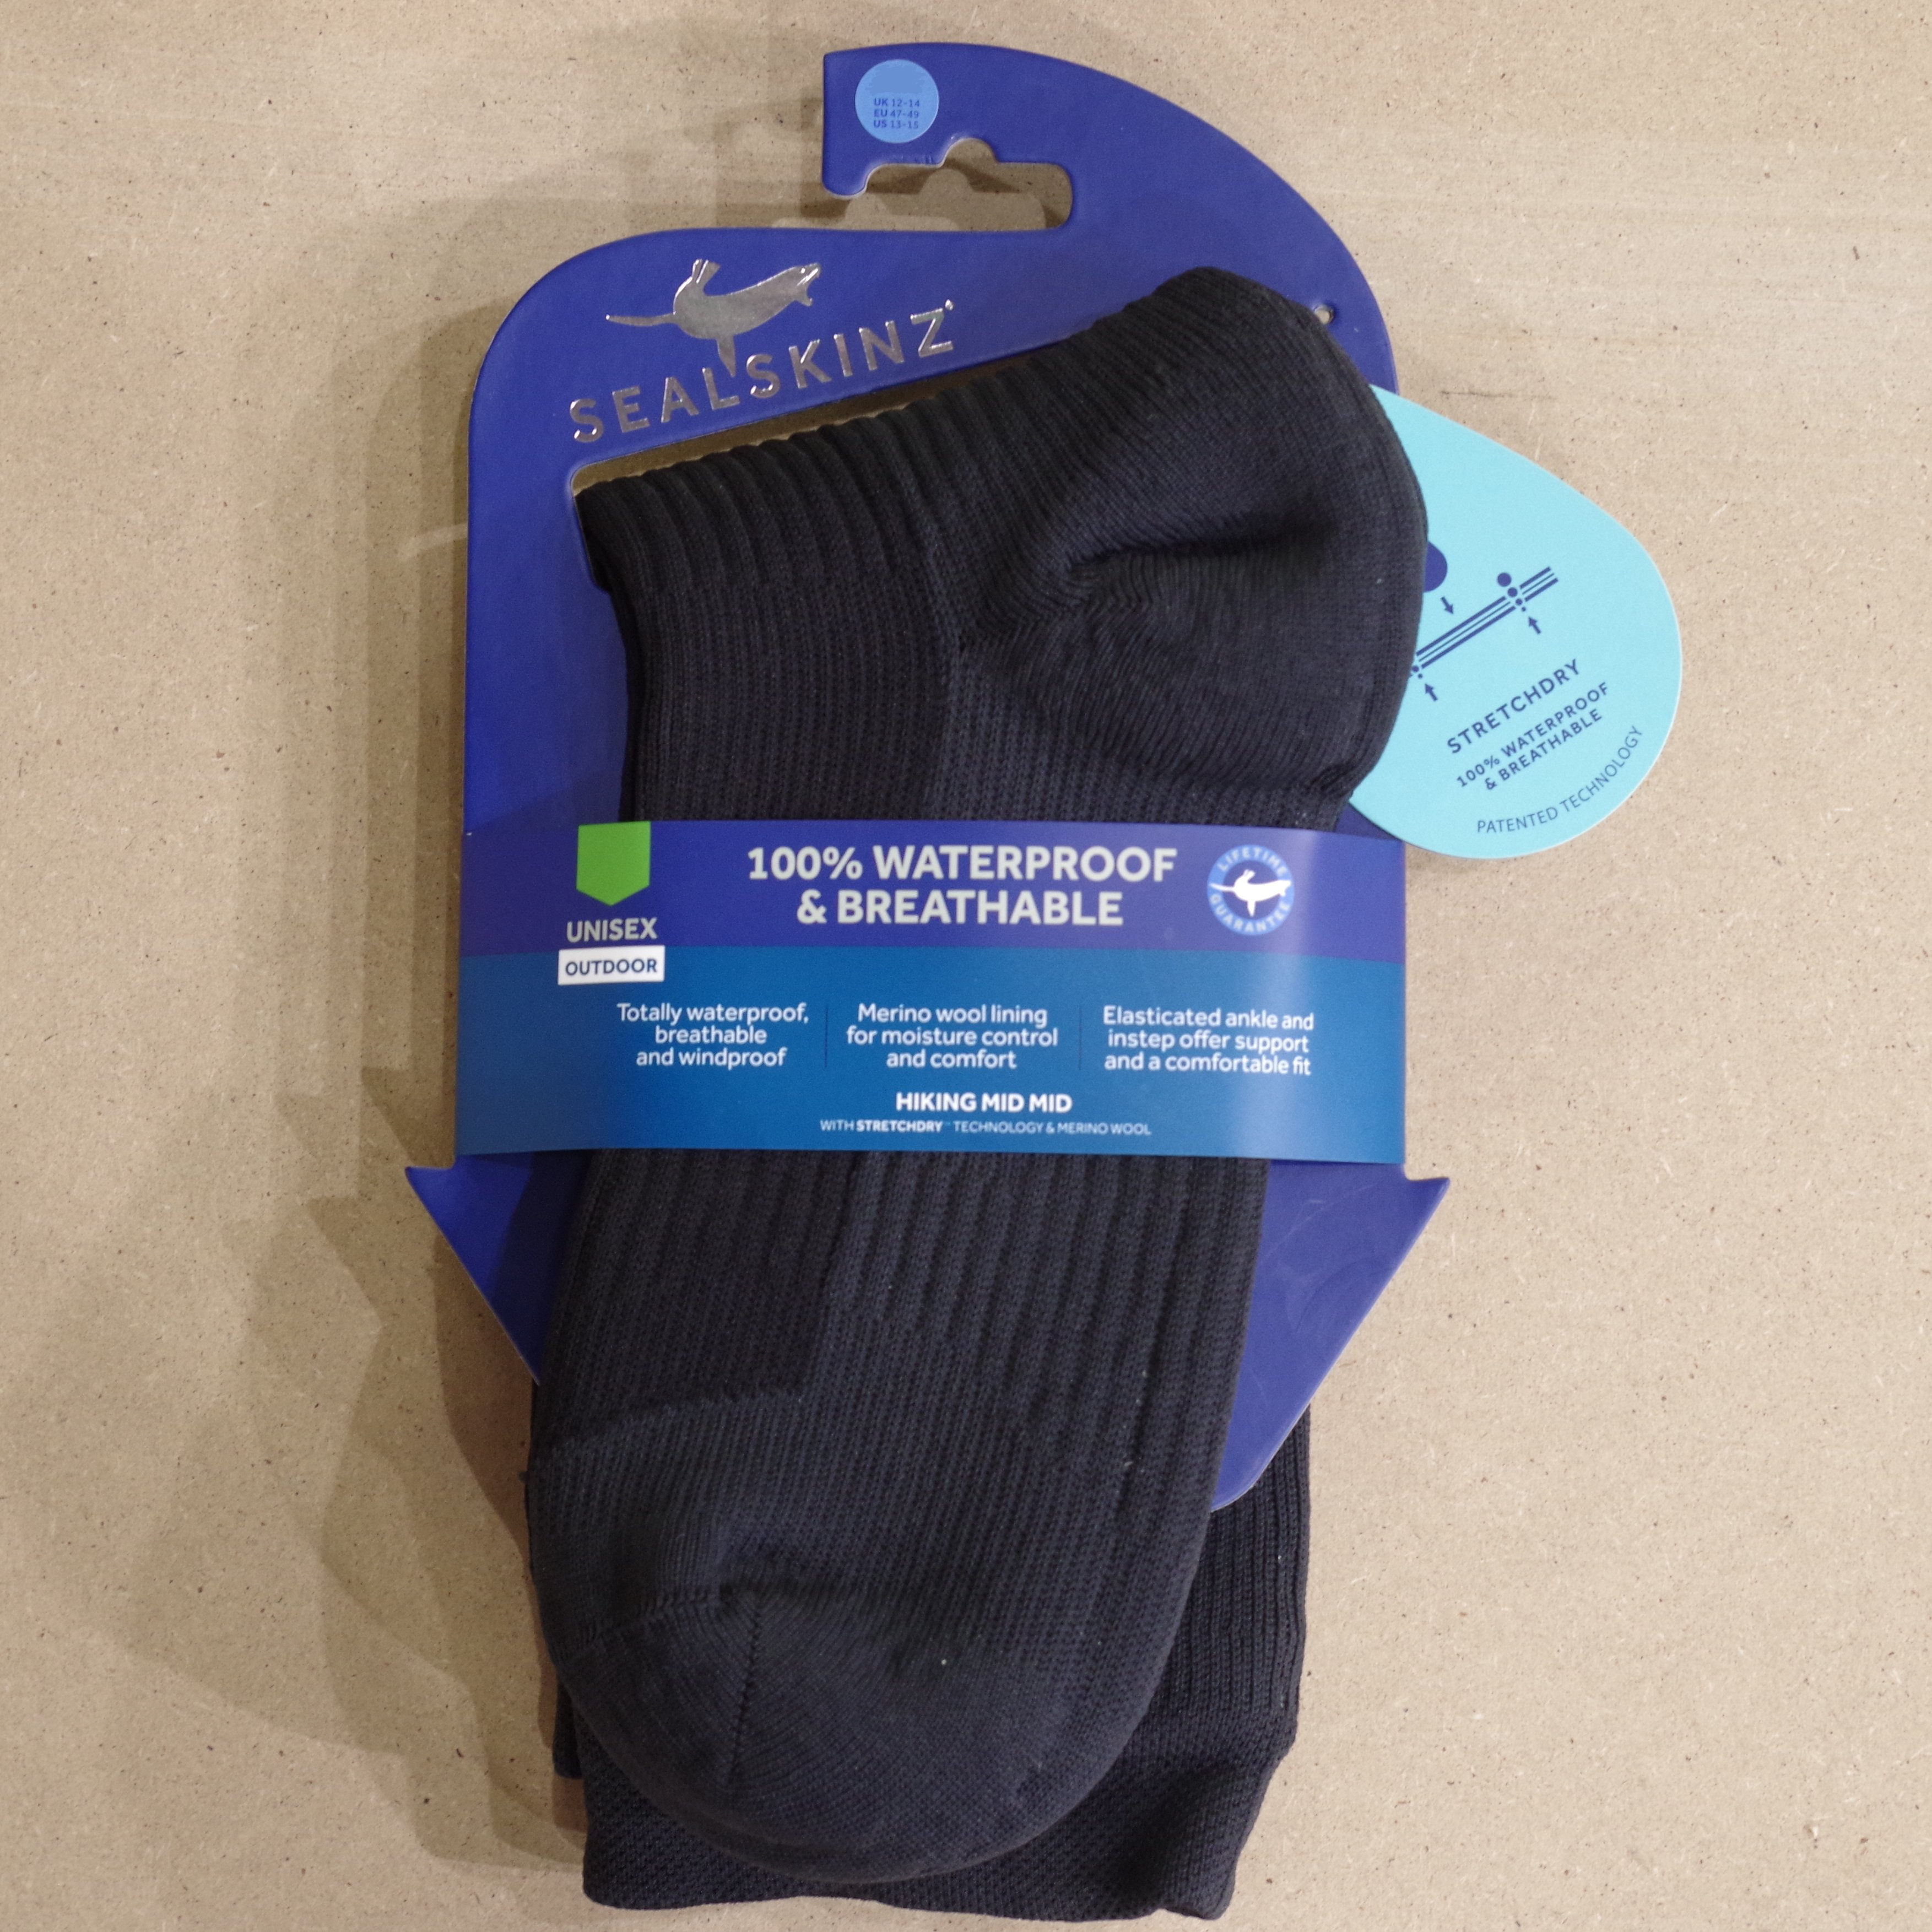 506b48b660b Sealskinz Hiking Mid Mid Bk Anth XL Waterproof socks £26.00